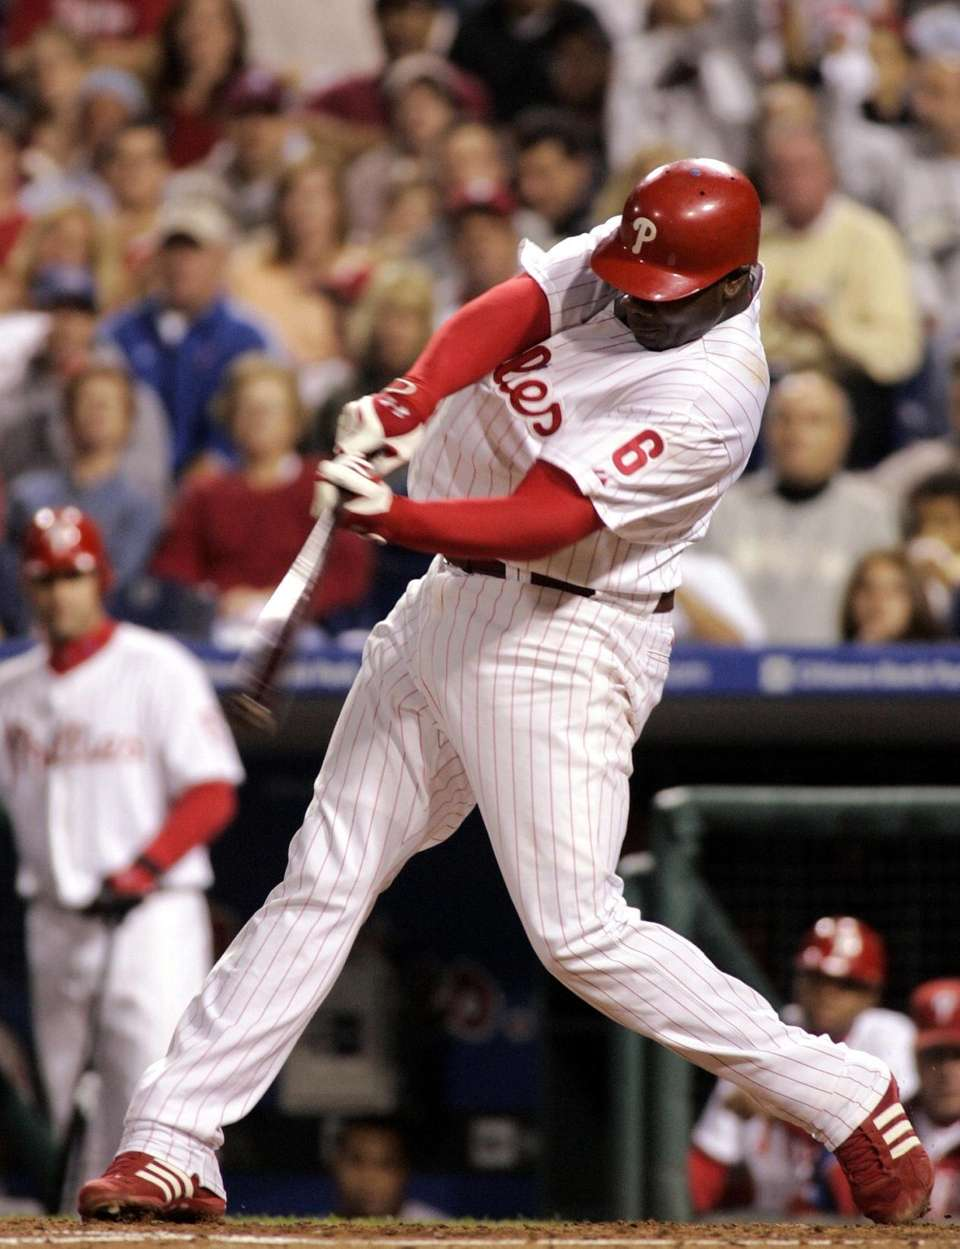 RYAN HOWARD 2006, Philadelphia Phillies 58 home runs